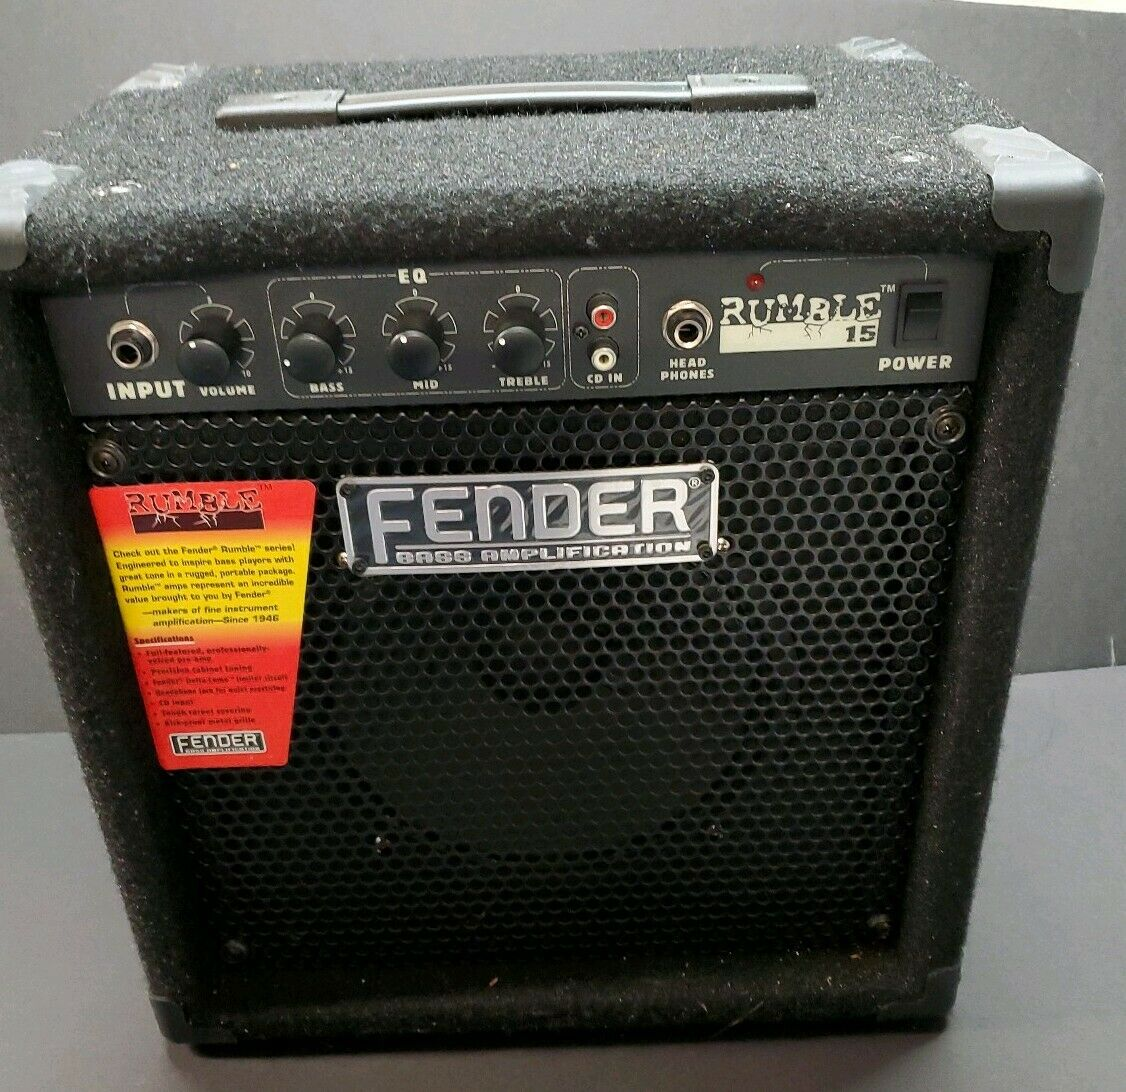 Fender Rumble 15 Model 497- Bass Amplifier Lightly Used  Sticker Still Affixed